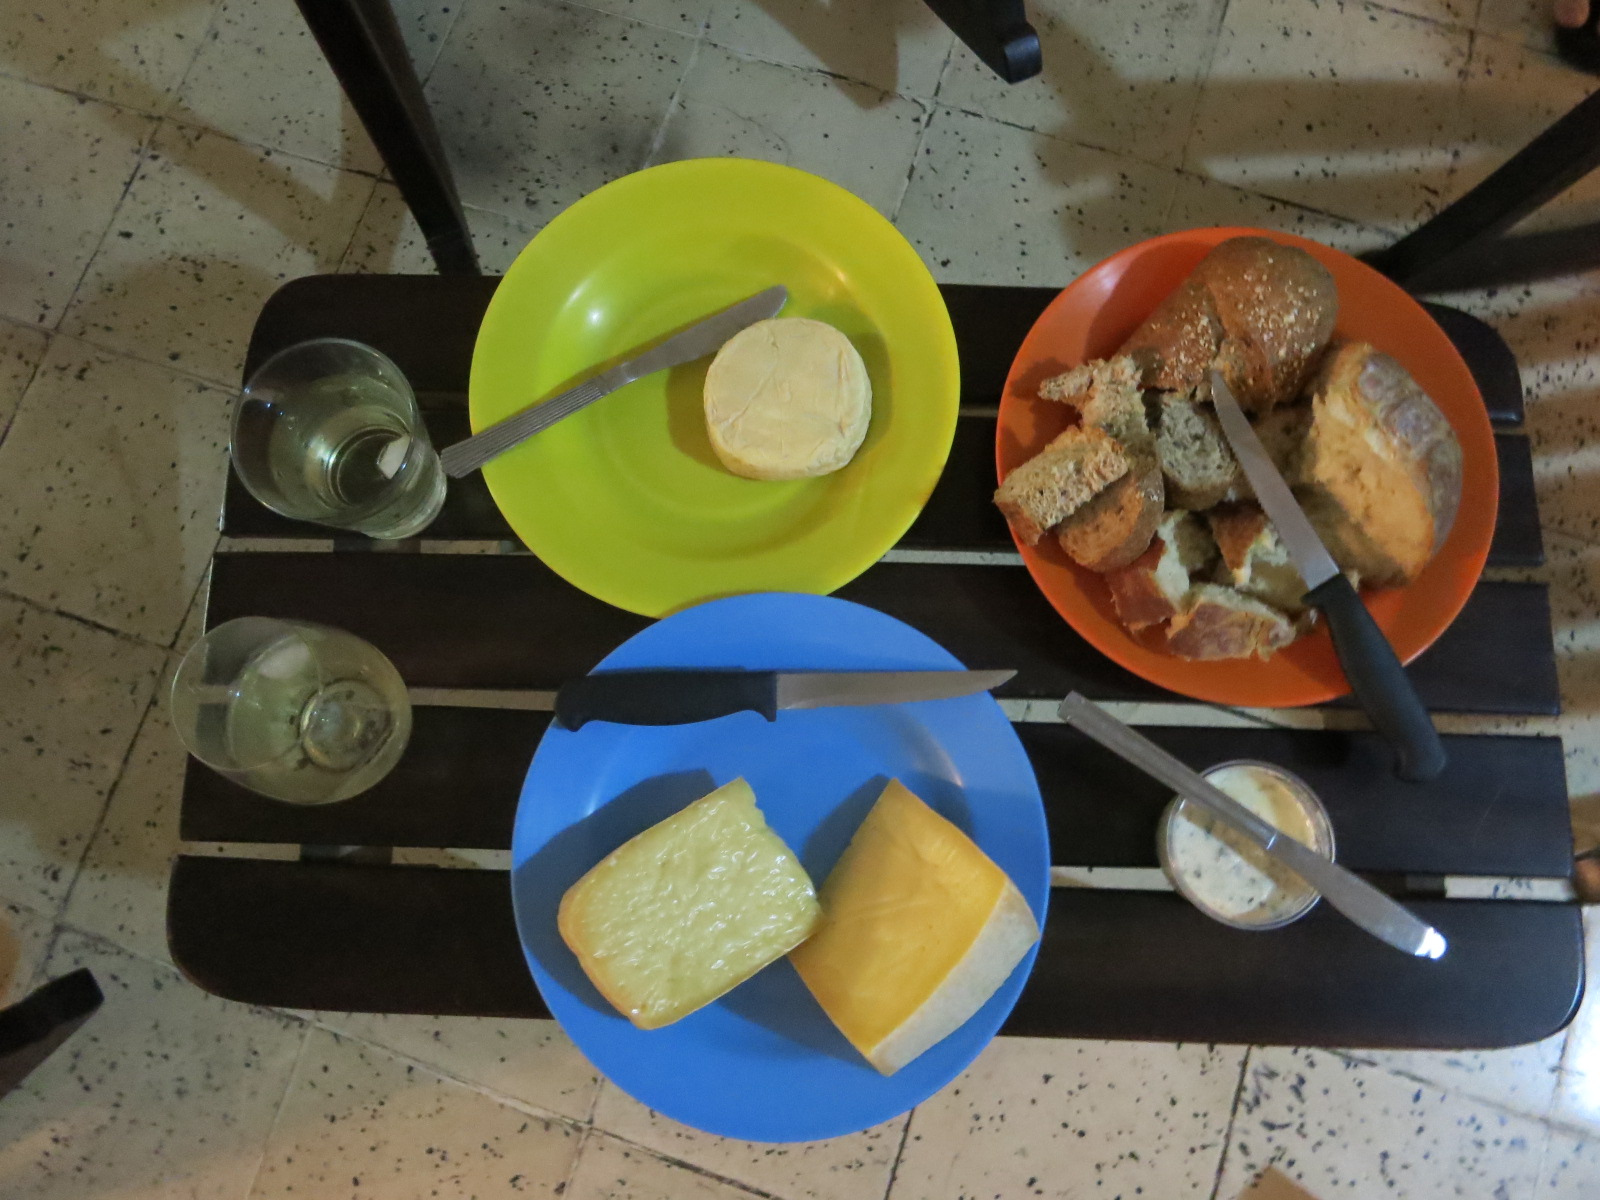 Cheese and bread plates